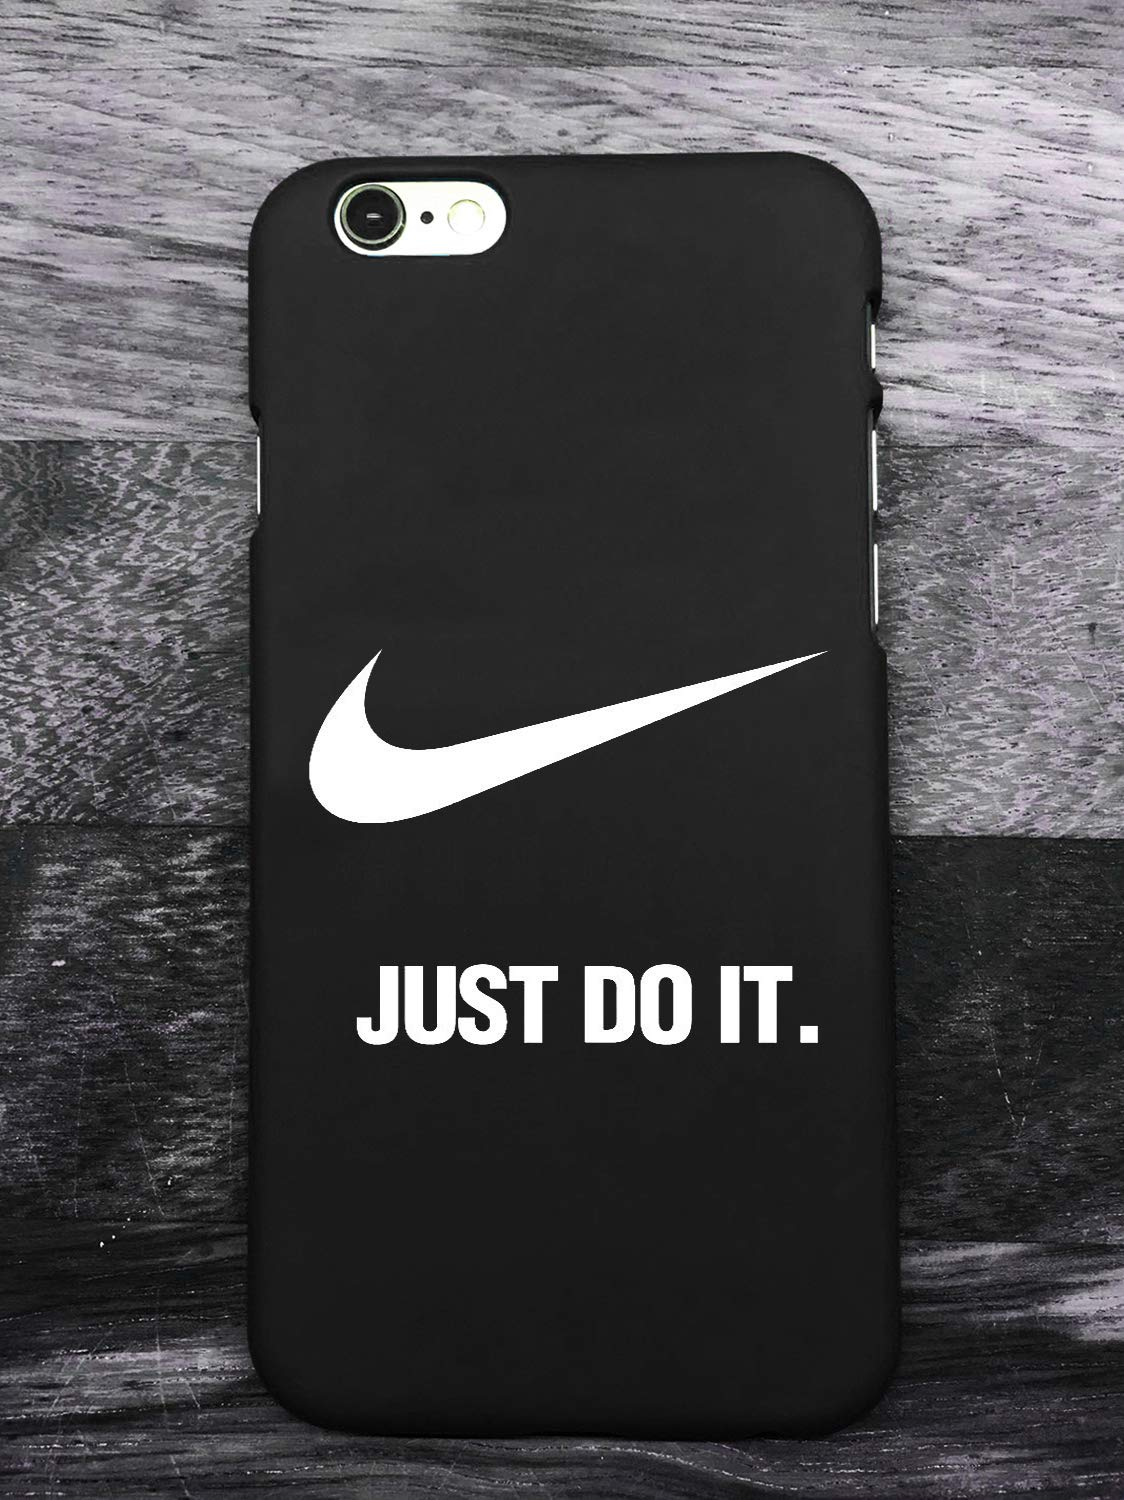 Iphone 6/6S Plus Coque Nike Just Do It Michael Jordan Brand Logo Theme Print for Boy, Popular Coque Iphone 6/6S Plus (5.5 Inch) Coque Cover Durable ...